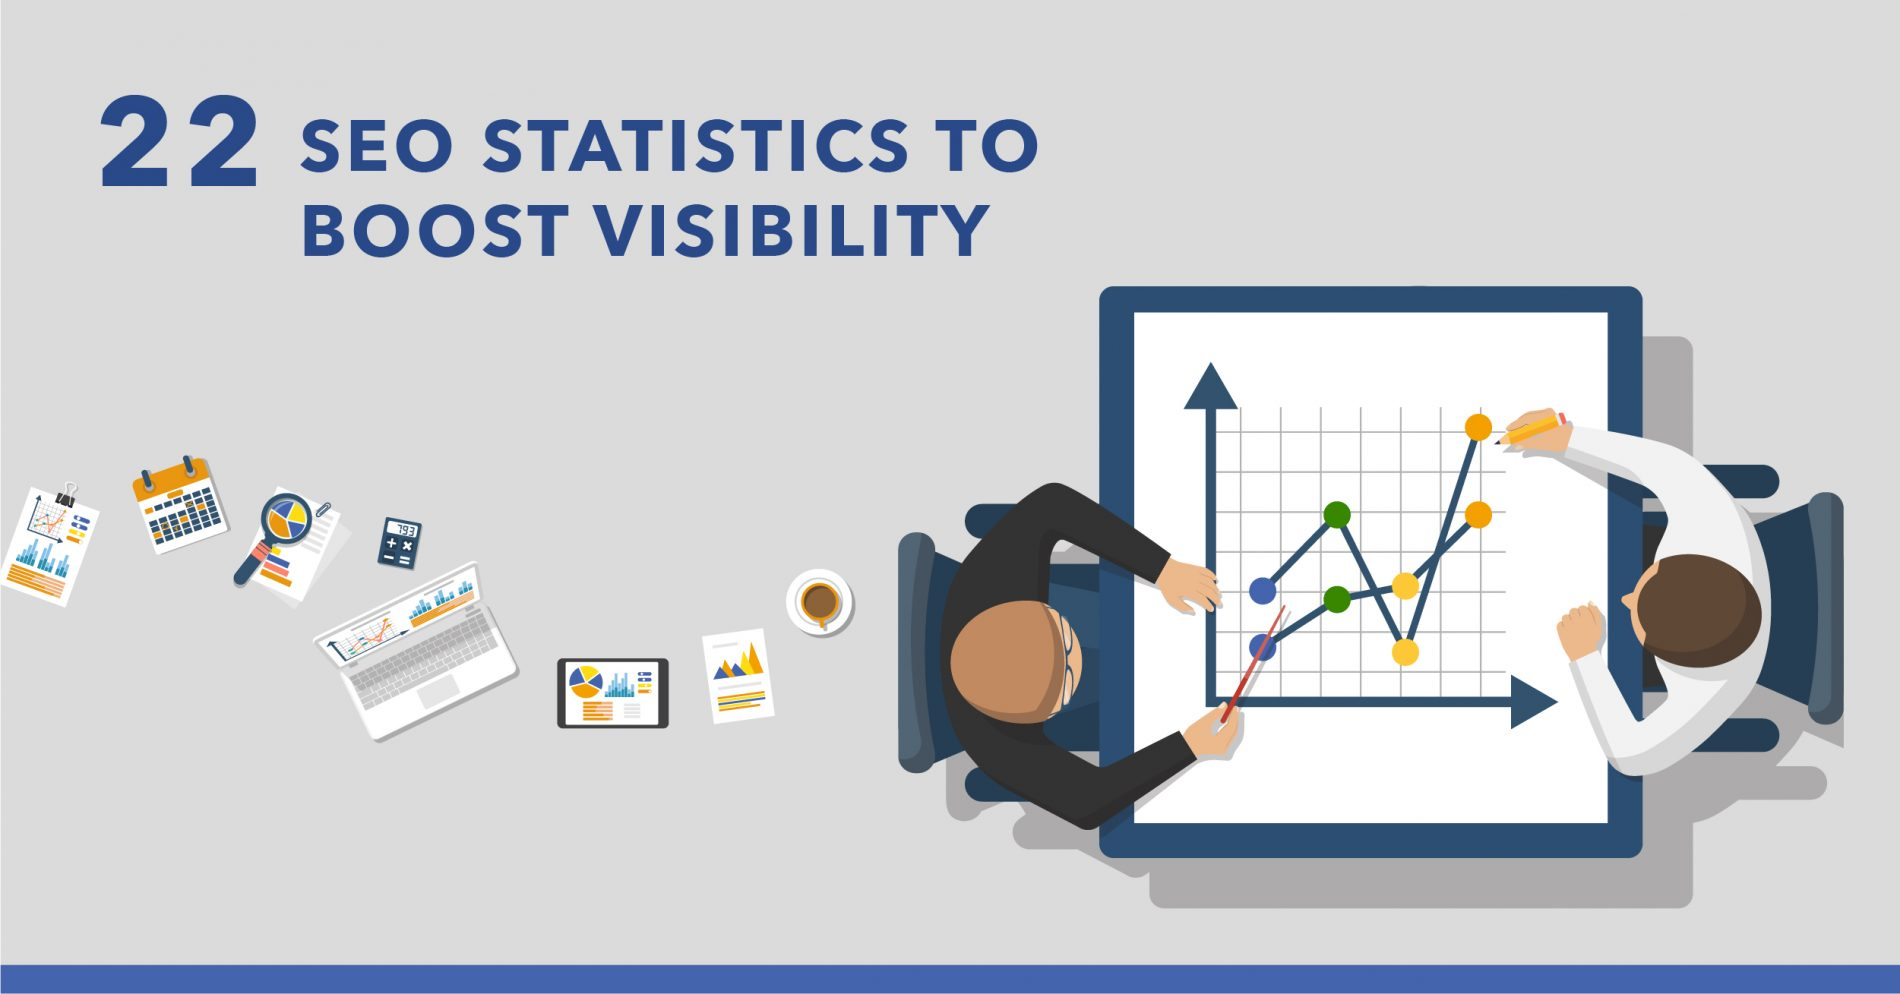 22 Relevant SEO Statistics to Help Boost Visibility in 2018 - Featured Image